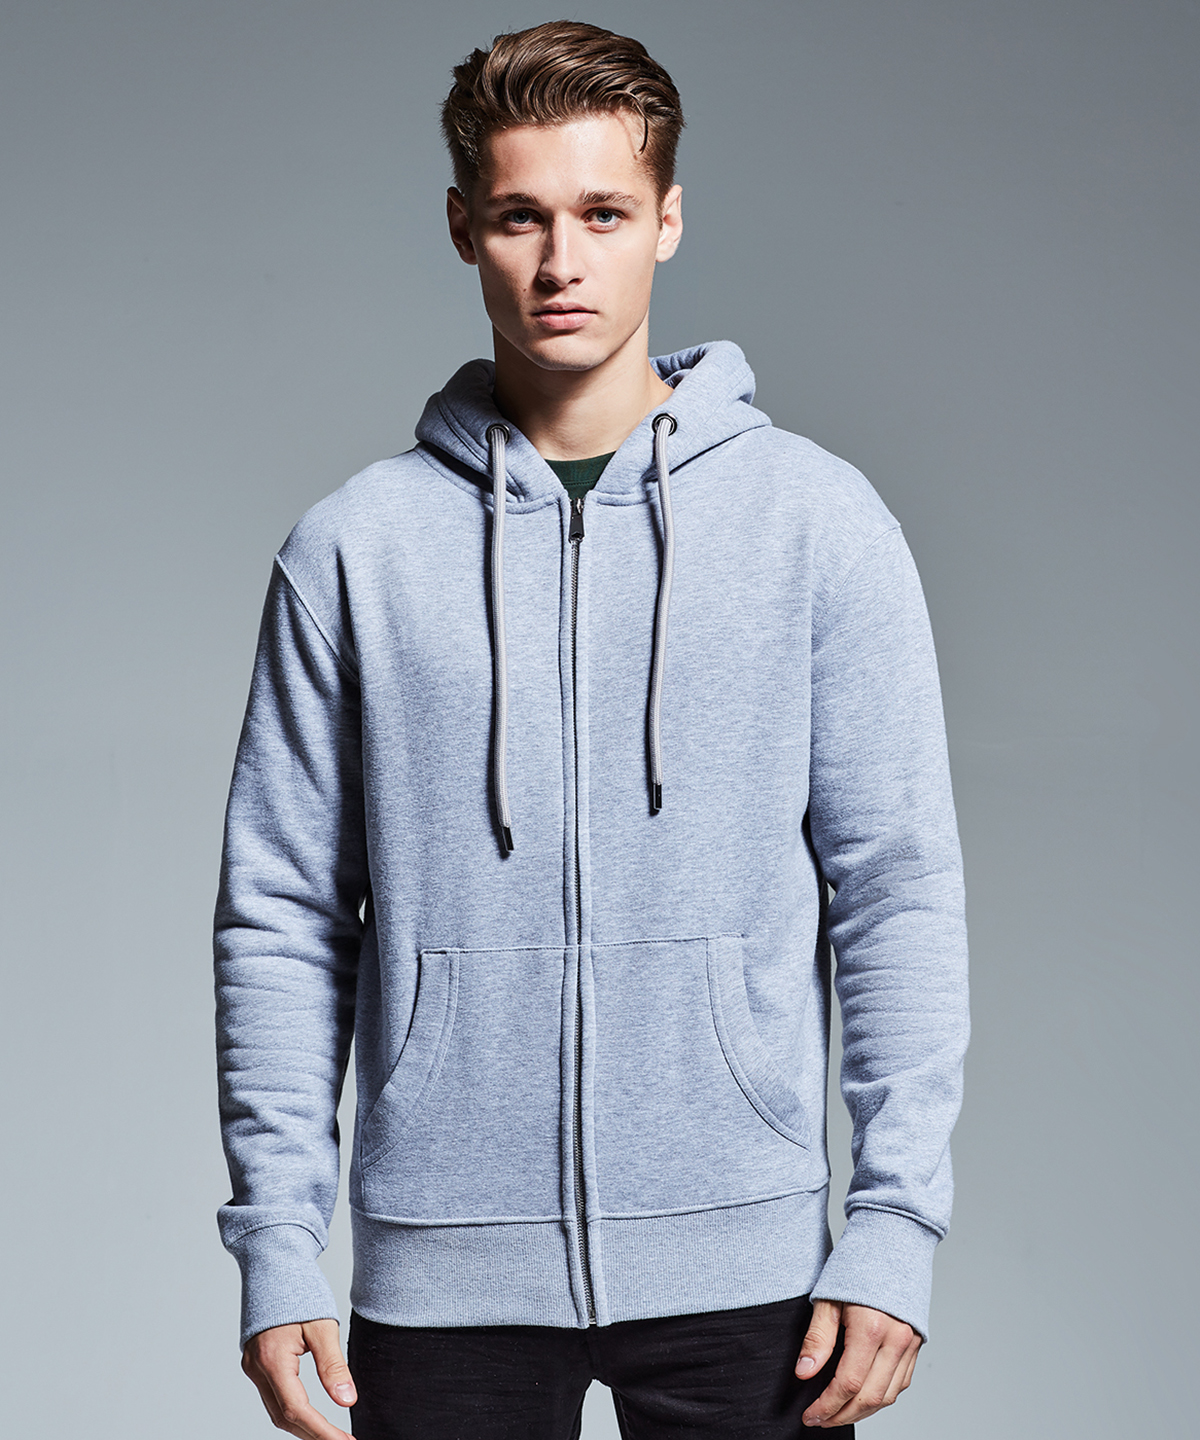 Anthem organic cotton and recycled polyester hoodie (AM002).